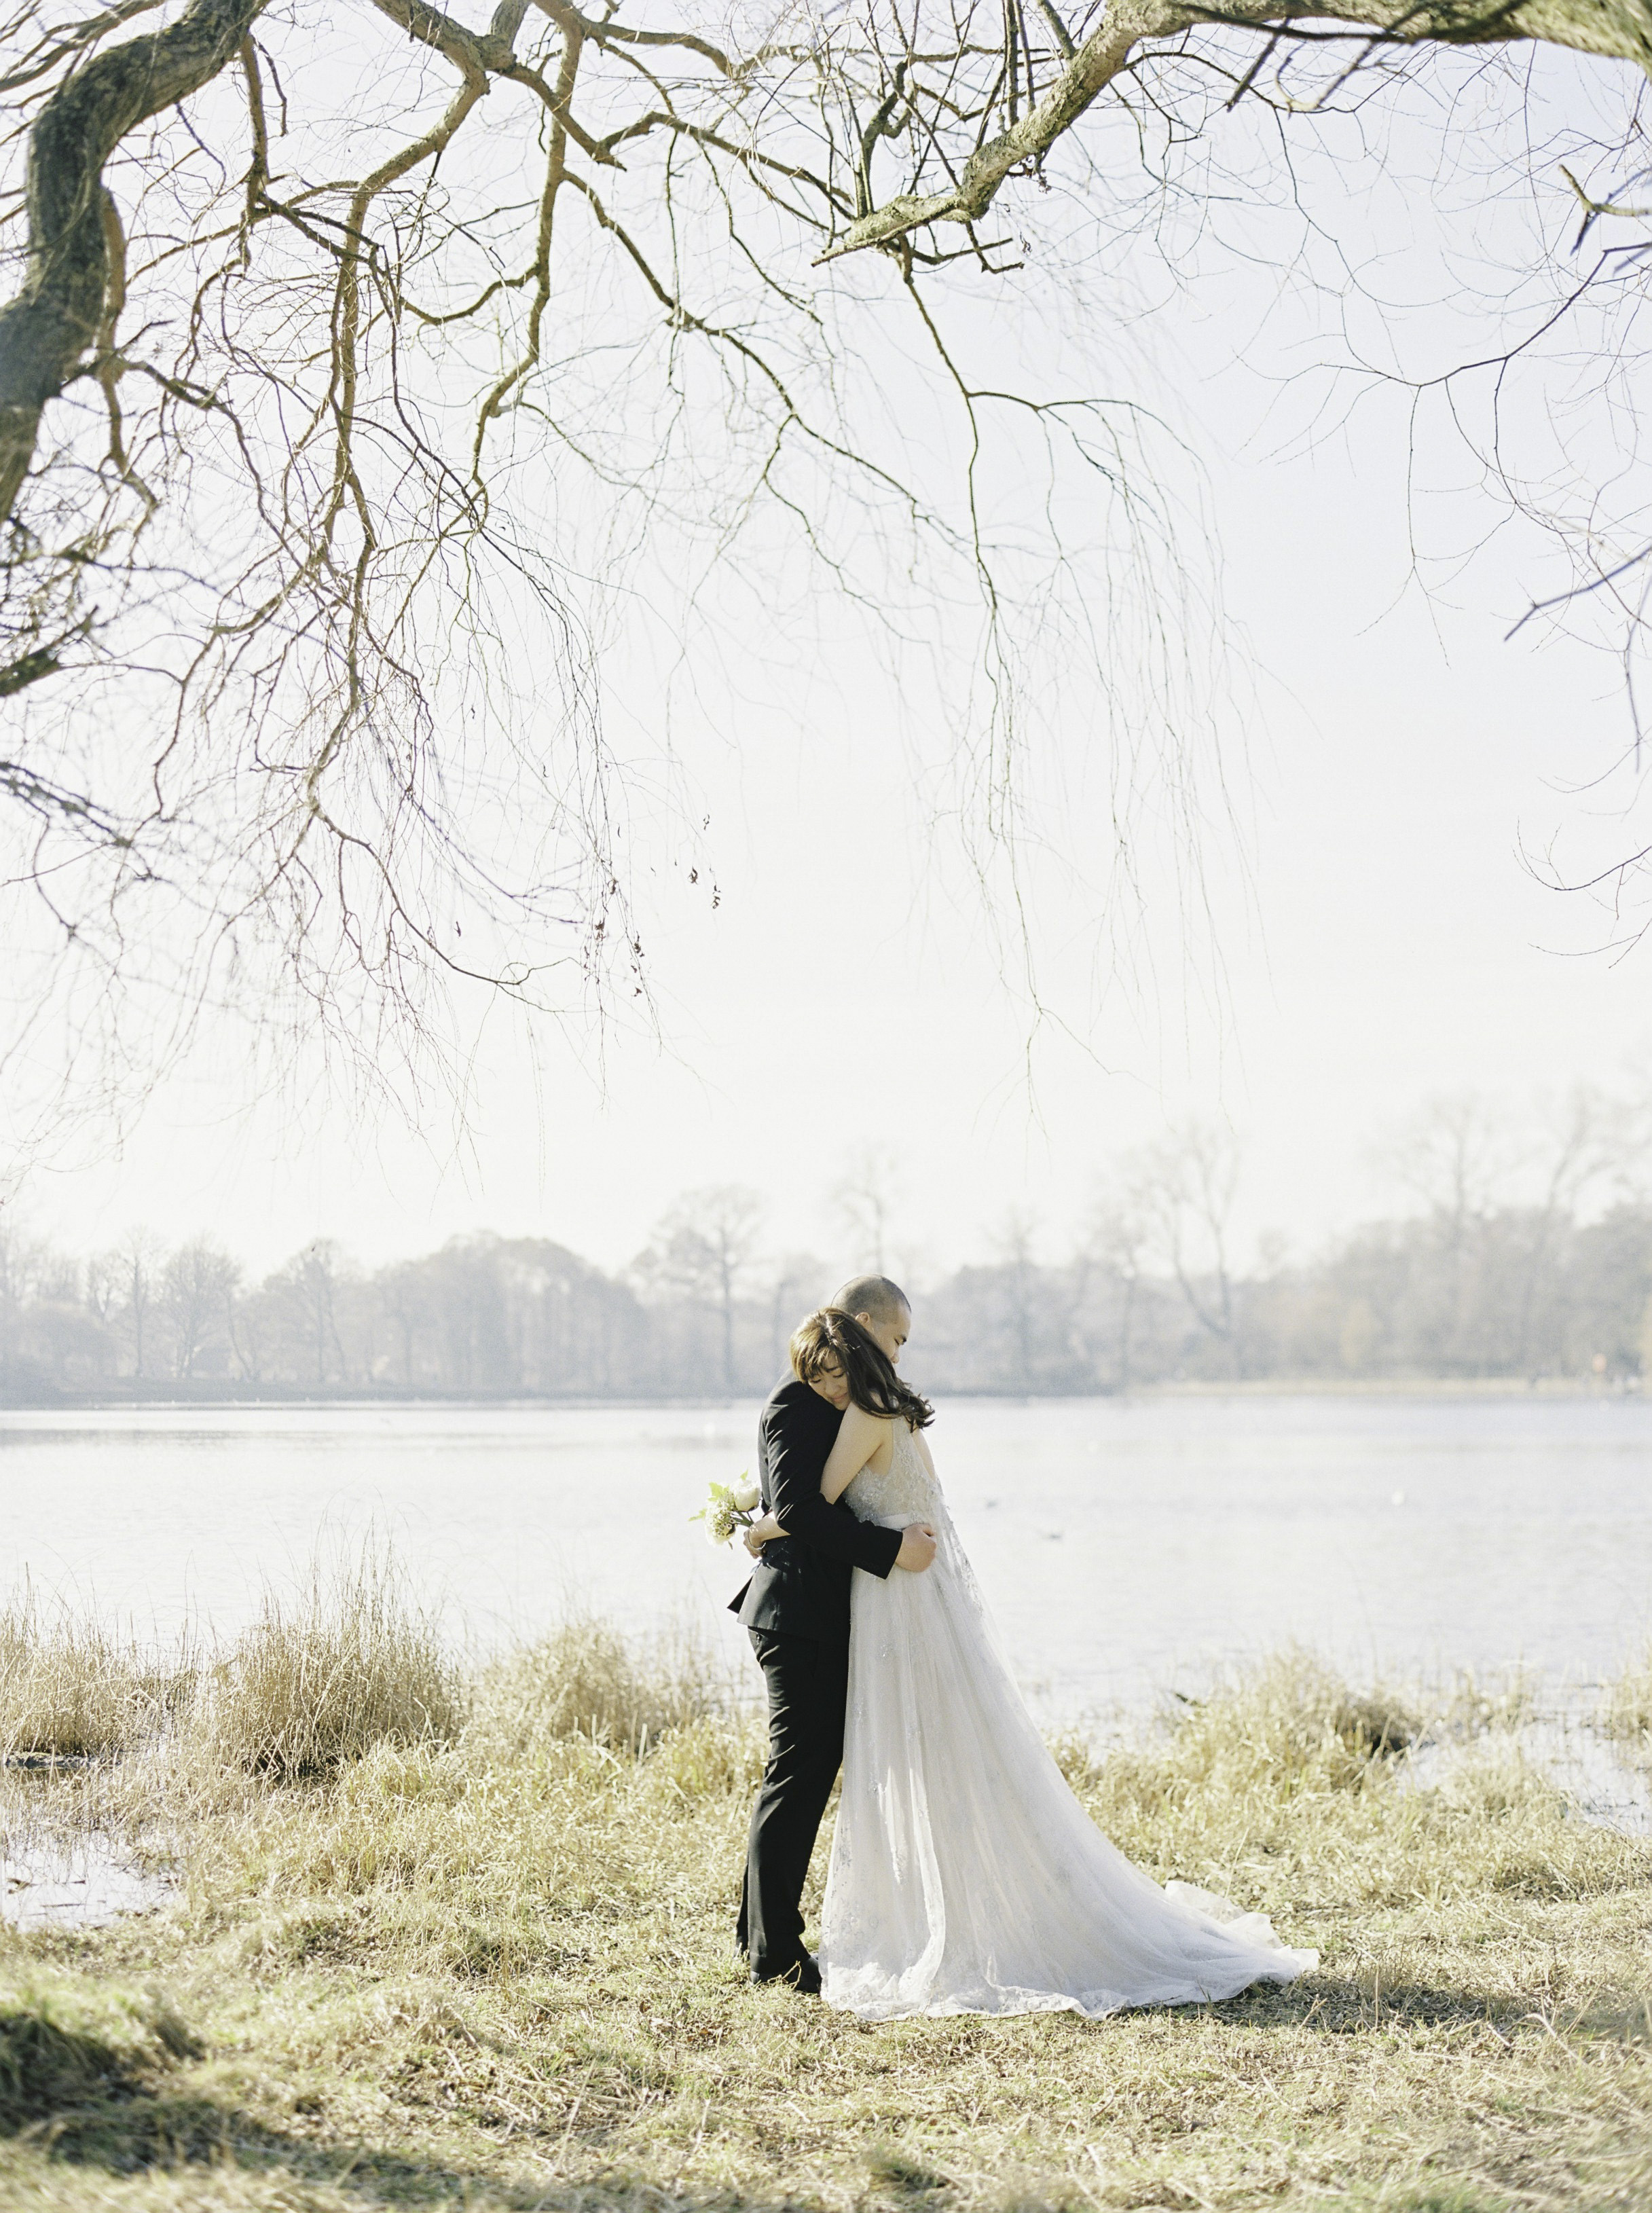 Terry-Li-Photography-Michelle-Himmy-Engagement-Photos-106